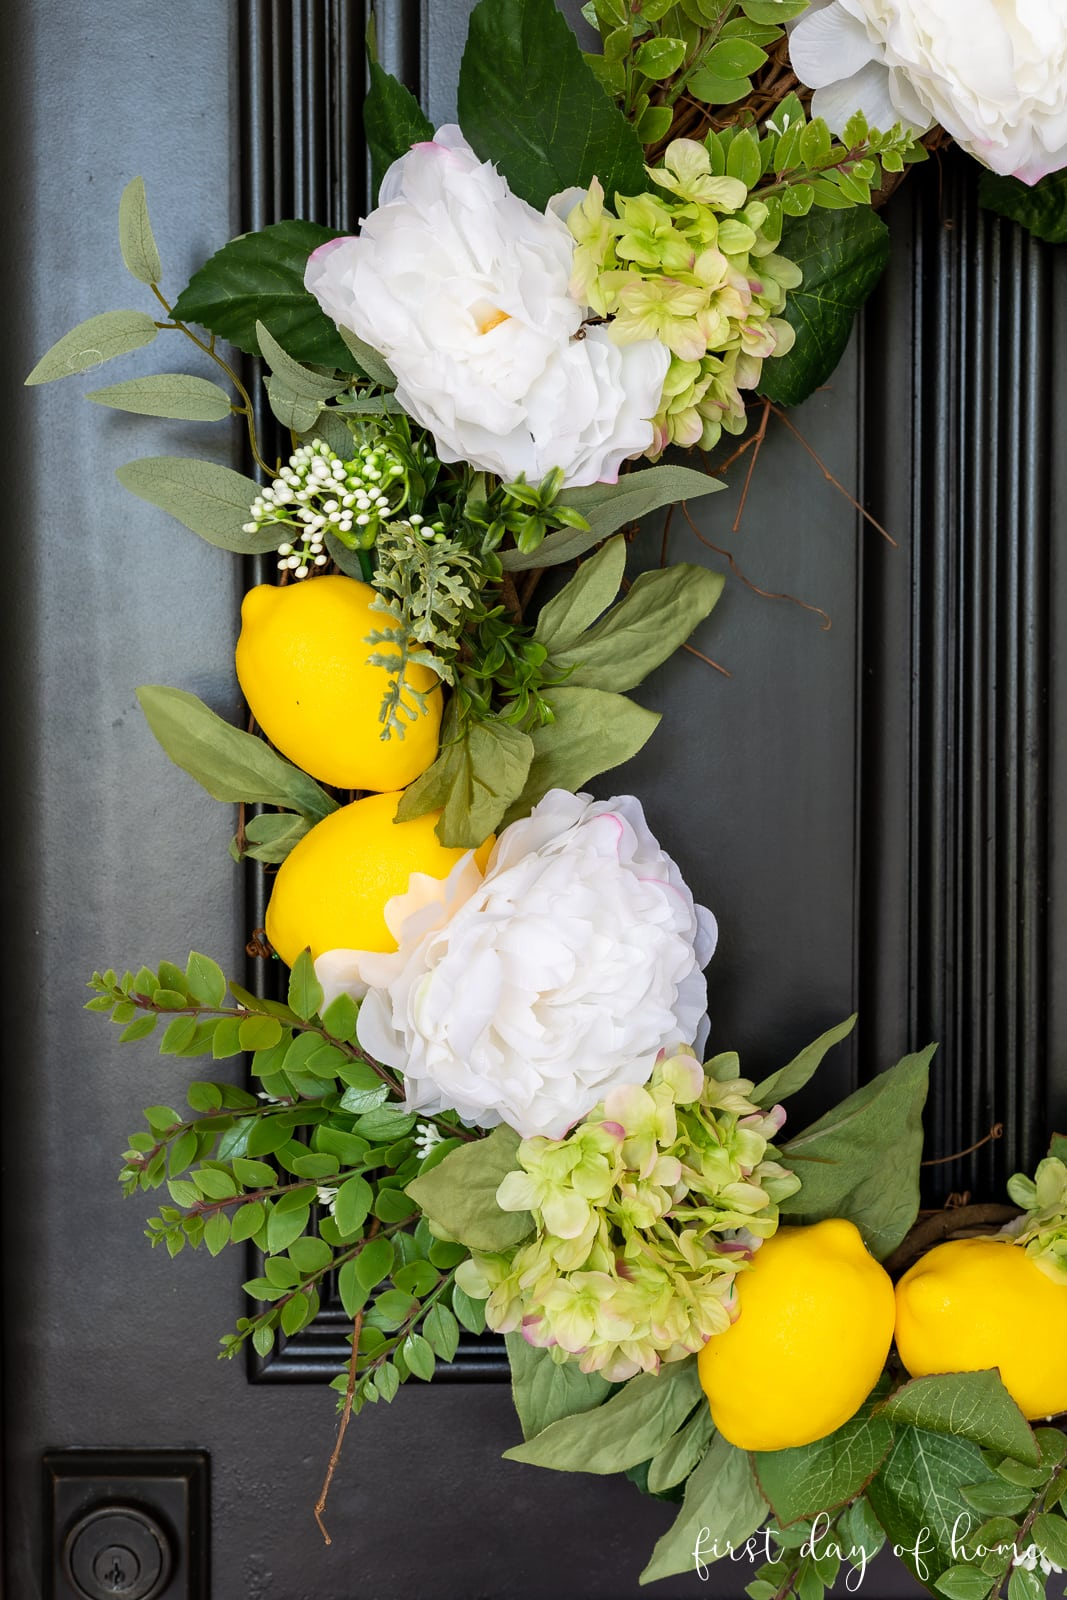 Closeup of grapevine wreath with lemons, hydrangeas, and white peonies on black front door